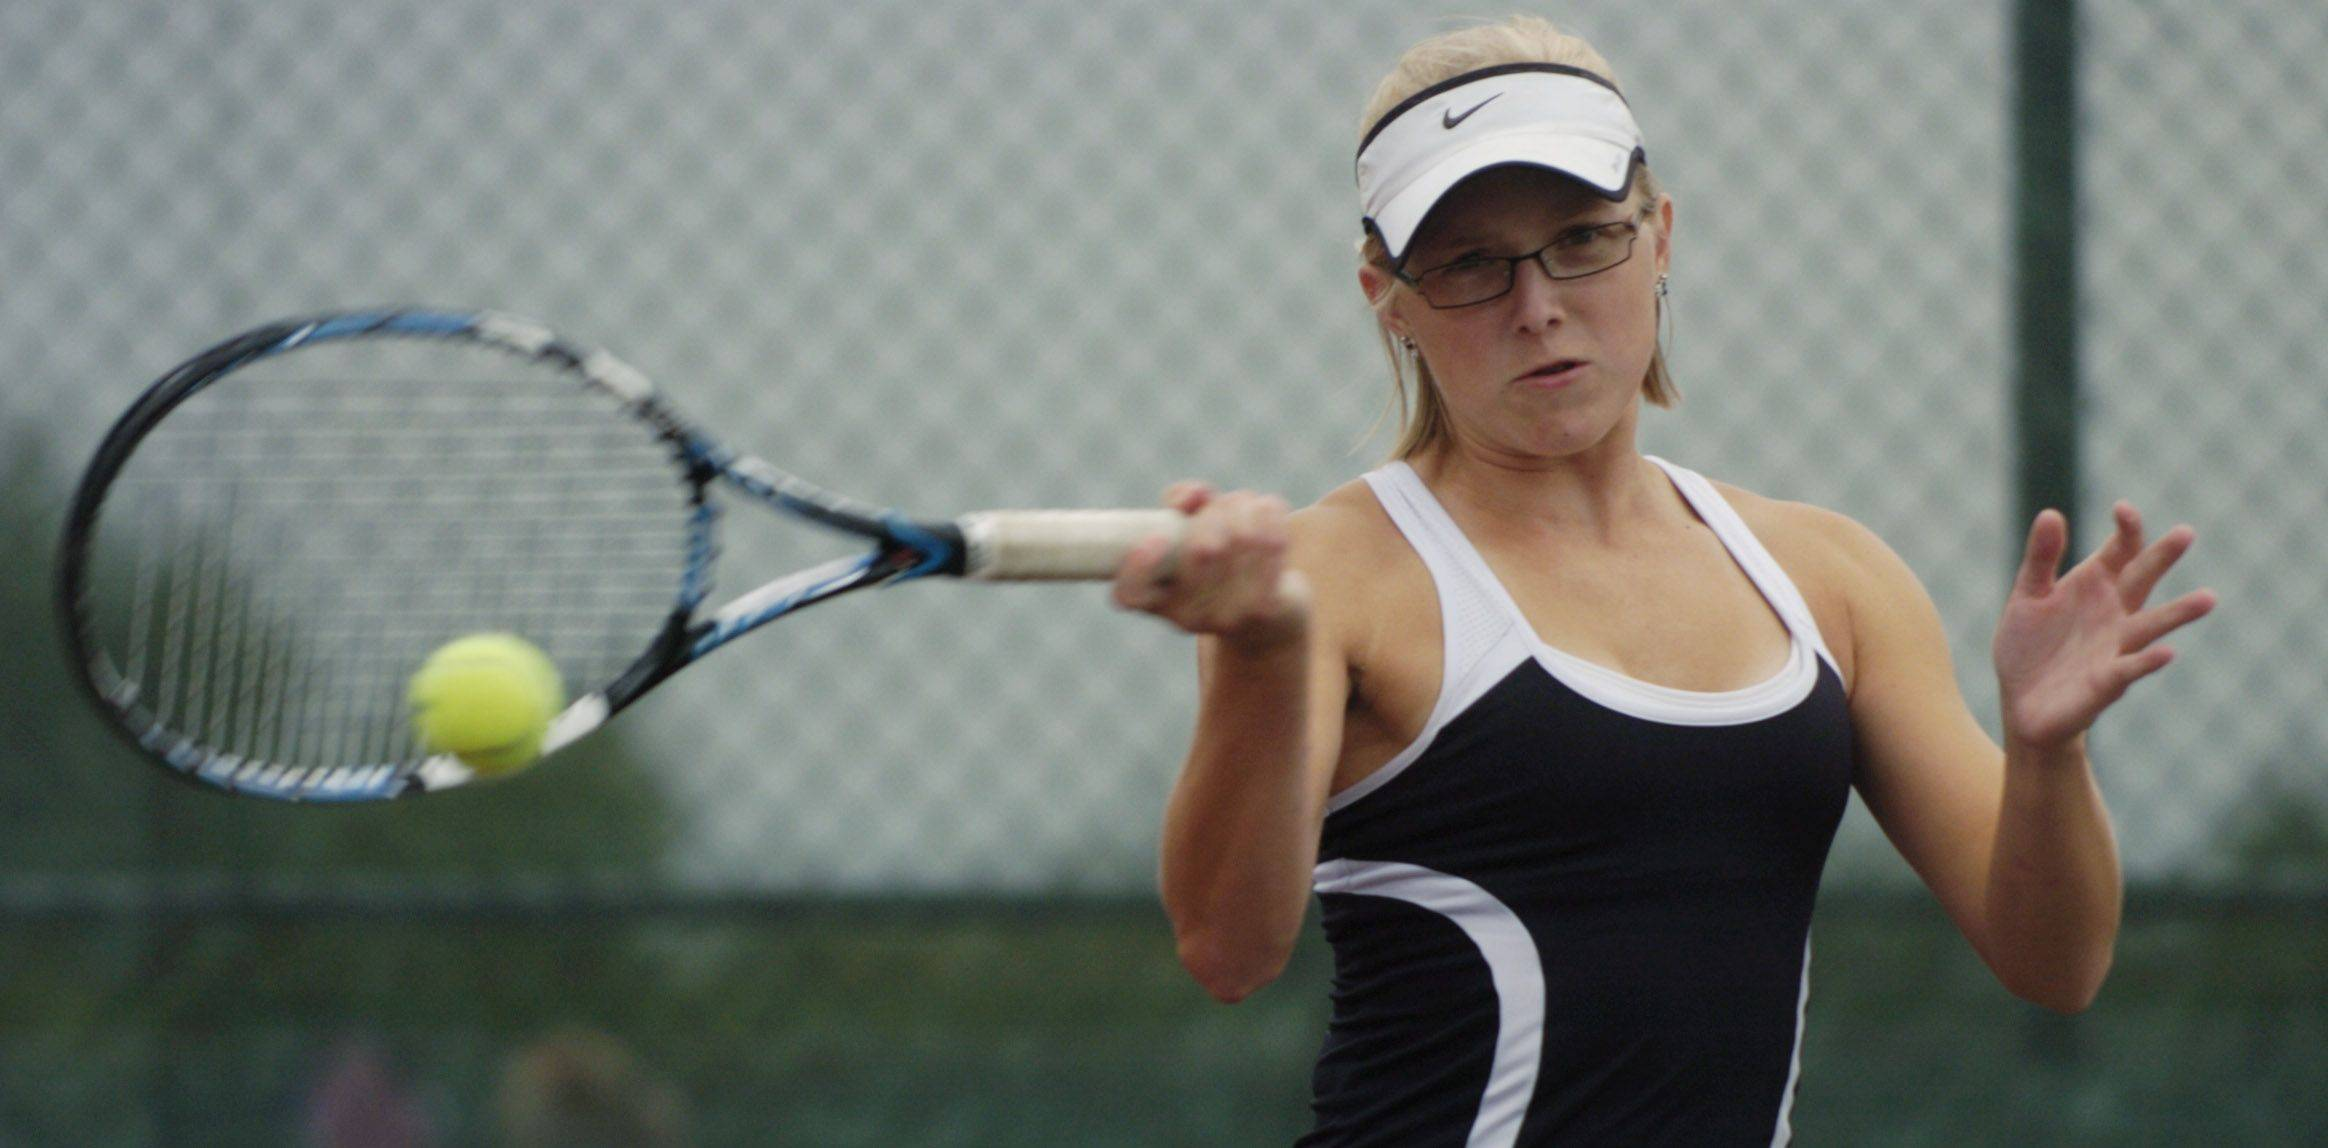 Zoe Kasuriak hopes to lead Barrington to an 18th consecutive Mid-Suburban League girls tennis title.